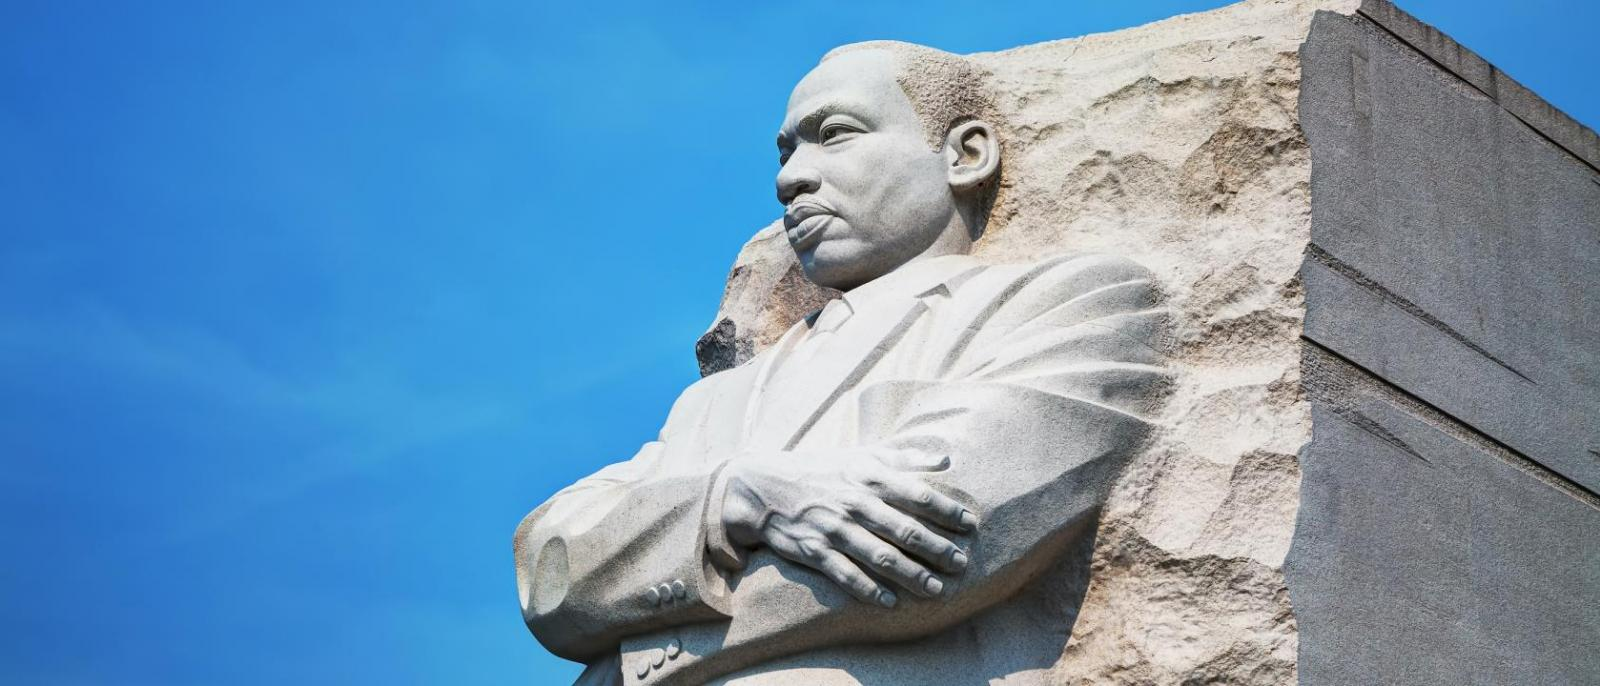 monument of Martin Luther King, Jr.